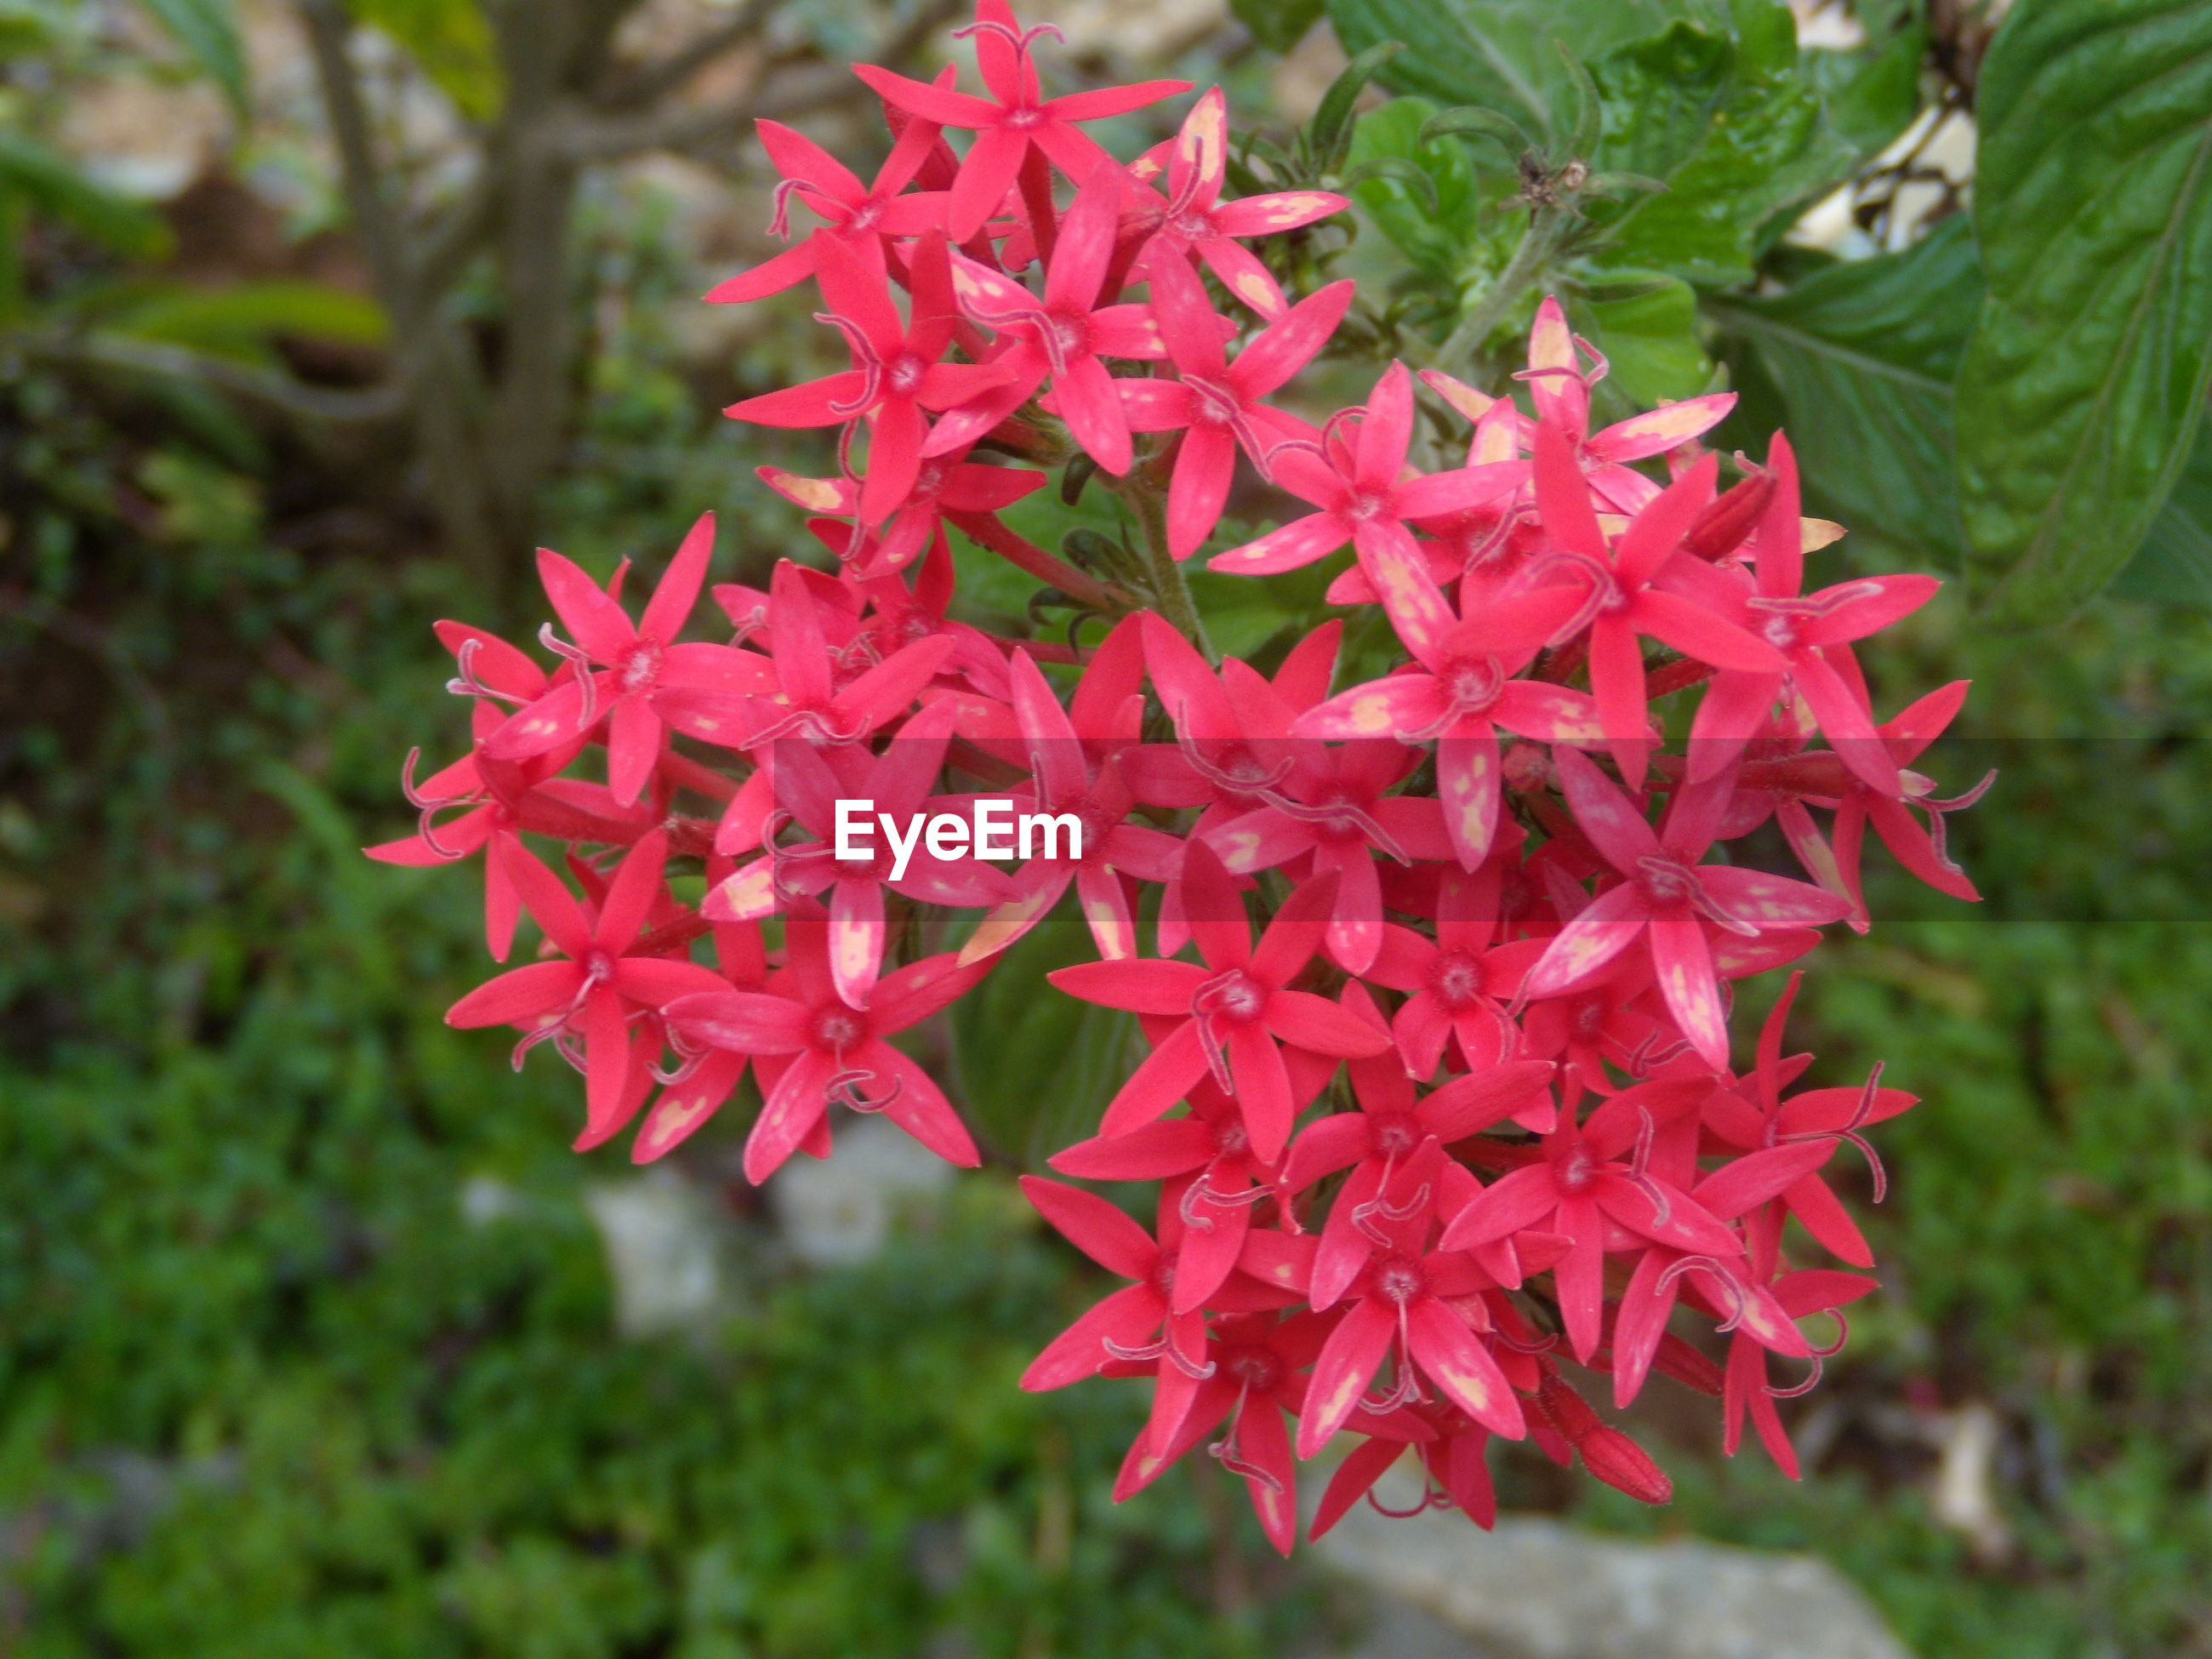 flower, growth, red, freshness, focus on foreground, beauty in nature, close-up, fragility, nature, plant, petal, leaf, selective focus, pink color, park - man made space, blooming, day, green color, outdoors, flower head